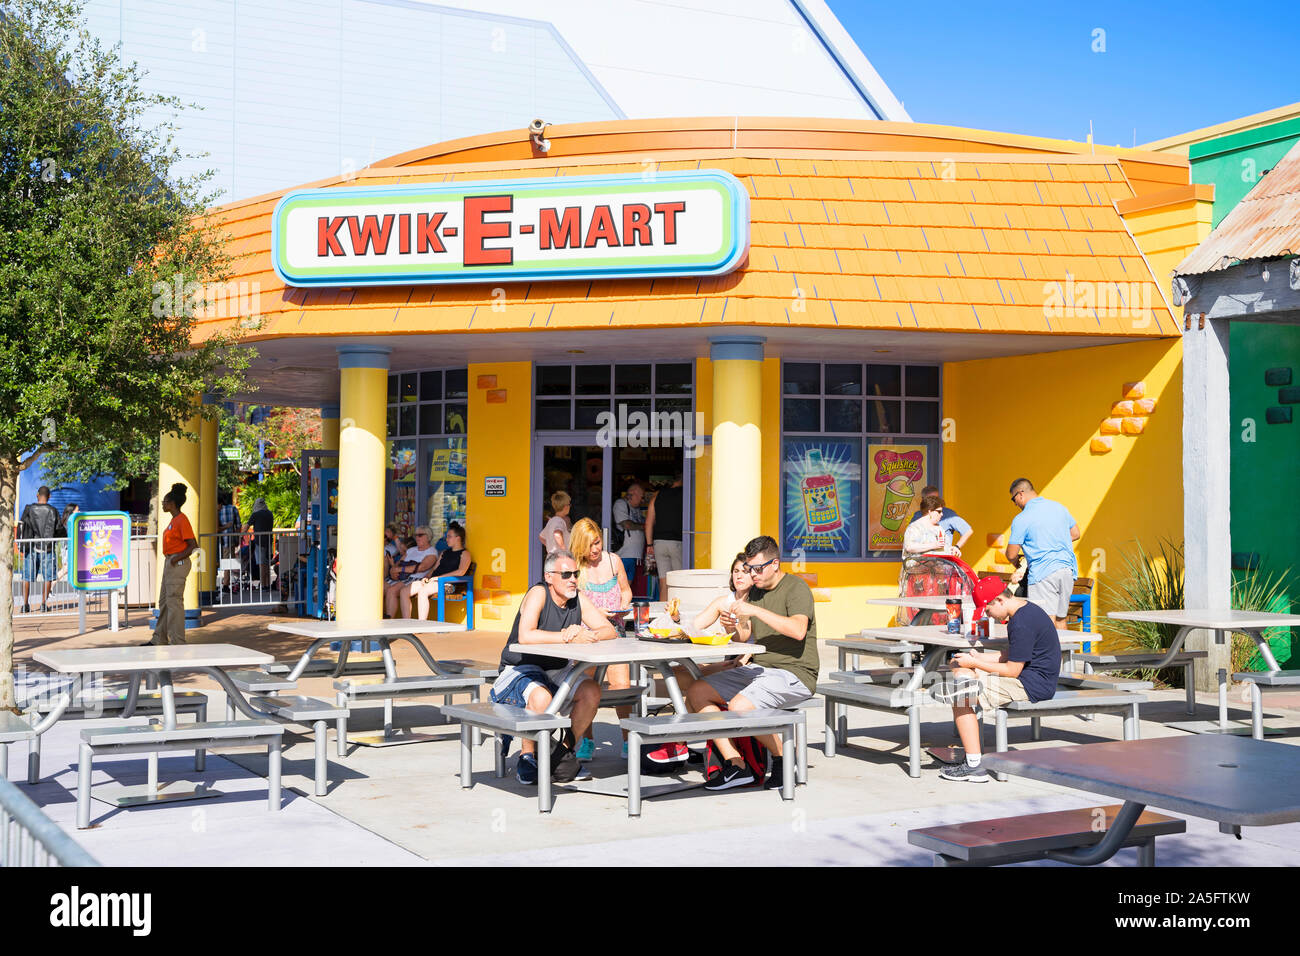 Kwik-E-Mart Entrance, Convenience Shop, Snacks, Food and Drinks and Simpsons Souvenir Store, Universal Studios Resort, Orlando, Florida, USA Stock Photo